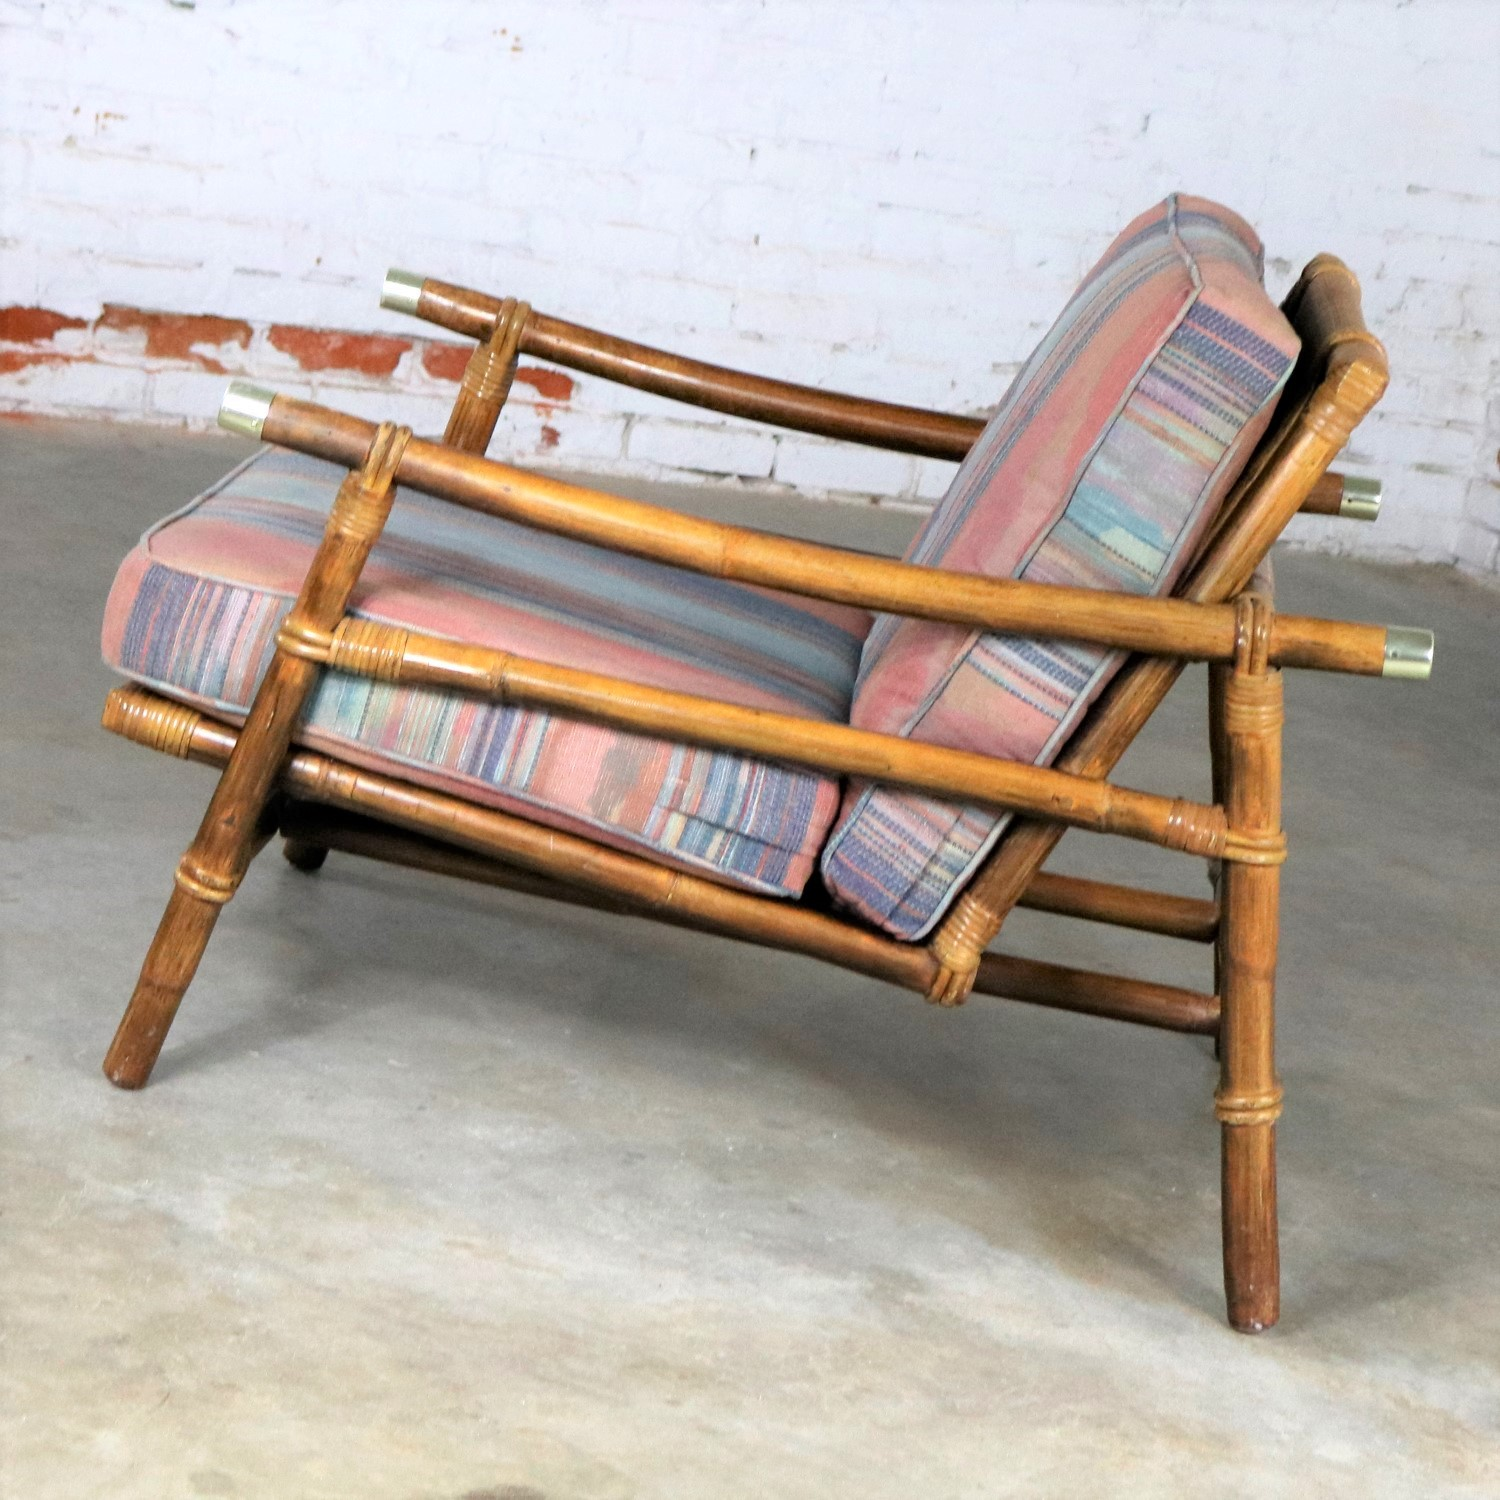 Vintage Ficks Reed Rattan Lounge Club Chair With Brass Accents By John  Wisner Campaign Style.